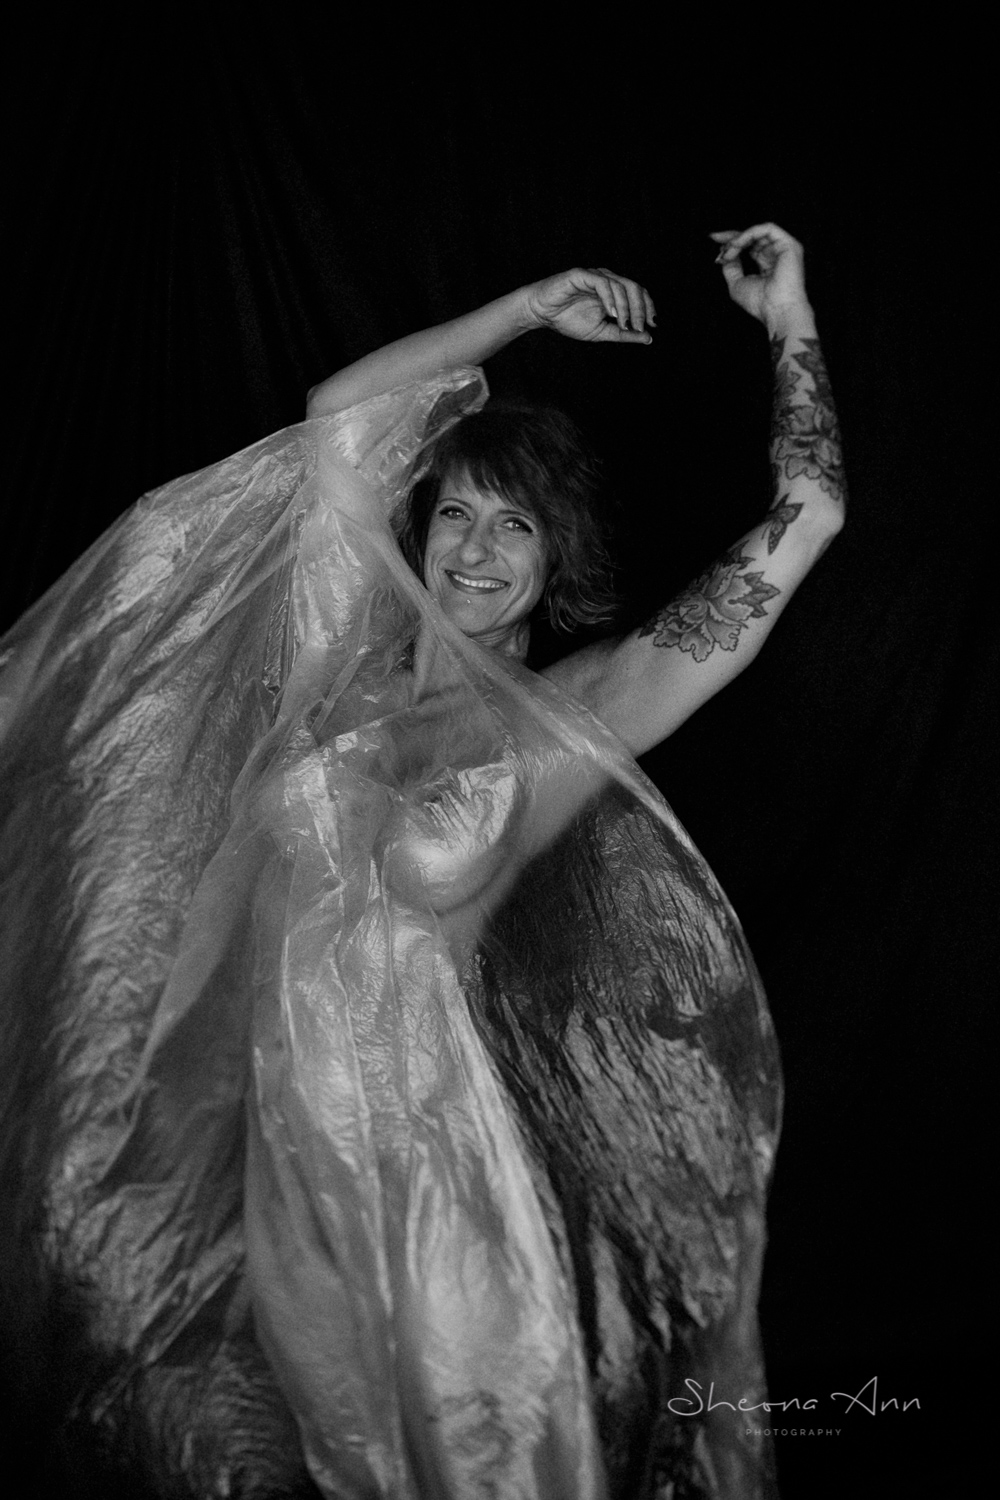 Vanessa-yoga-bw-Sheona-Ann-Photography (17 of 41).jpg